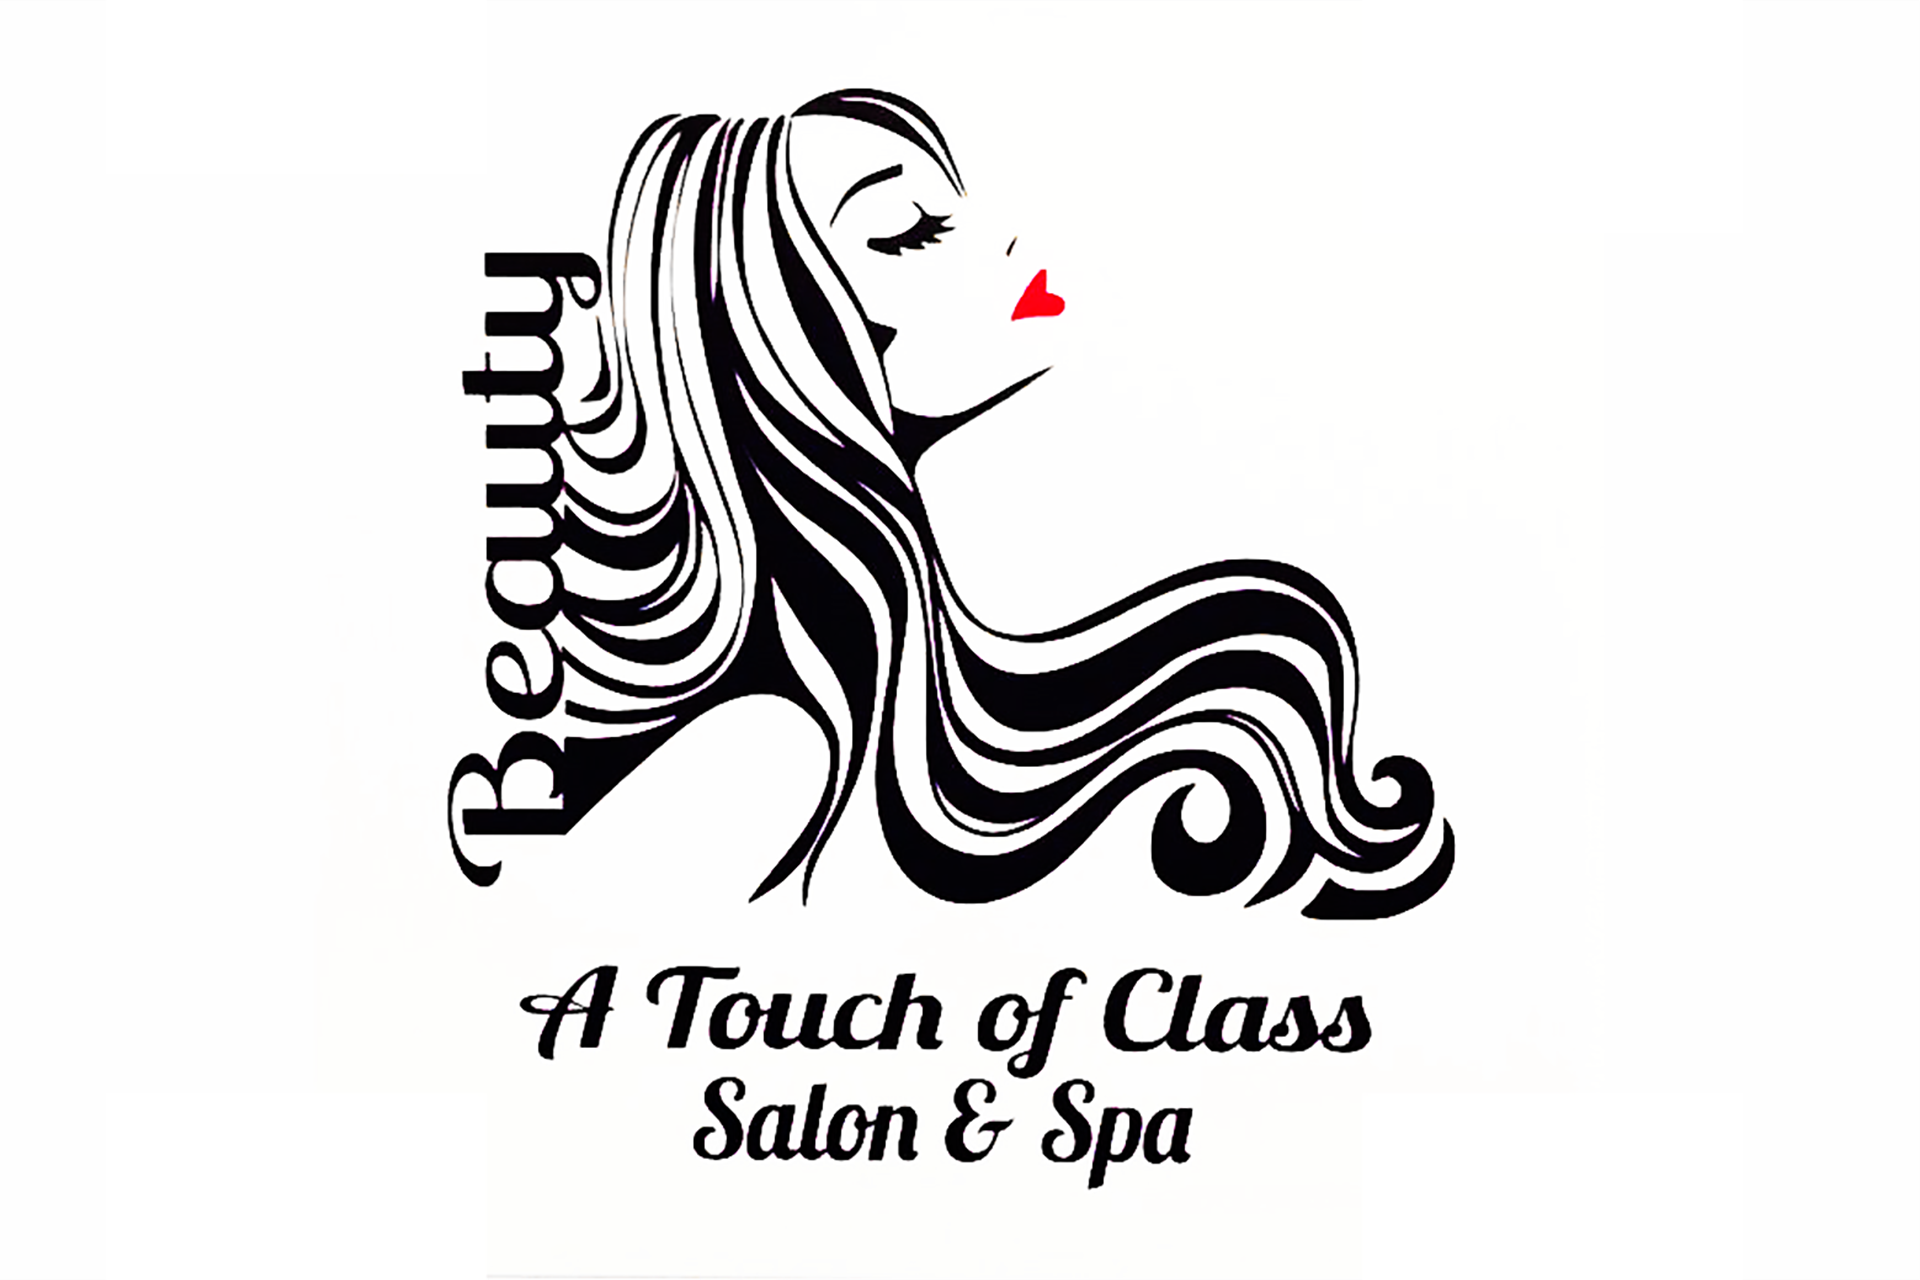 A Touch of Class Salon & Spa